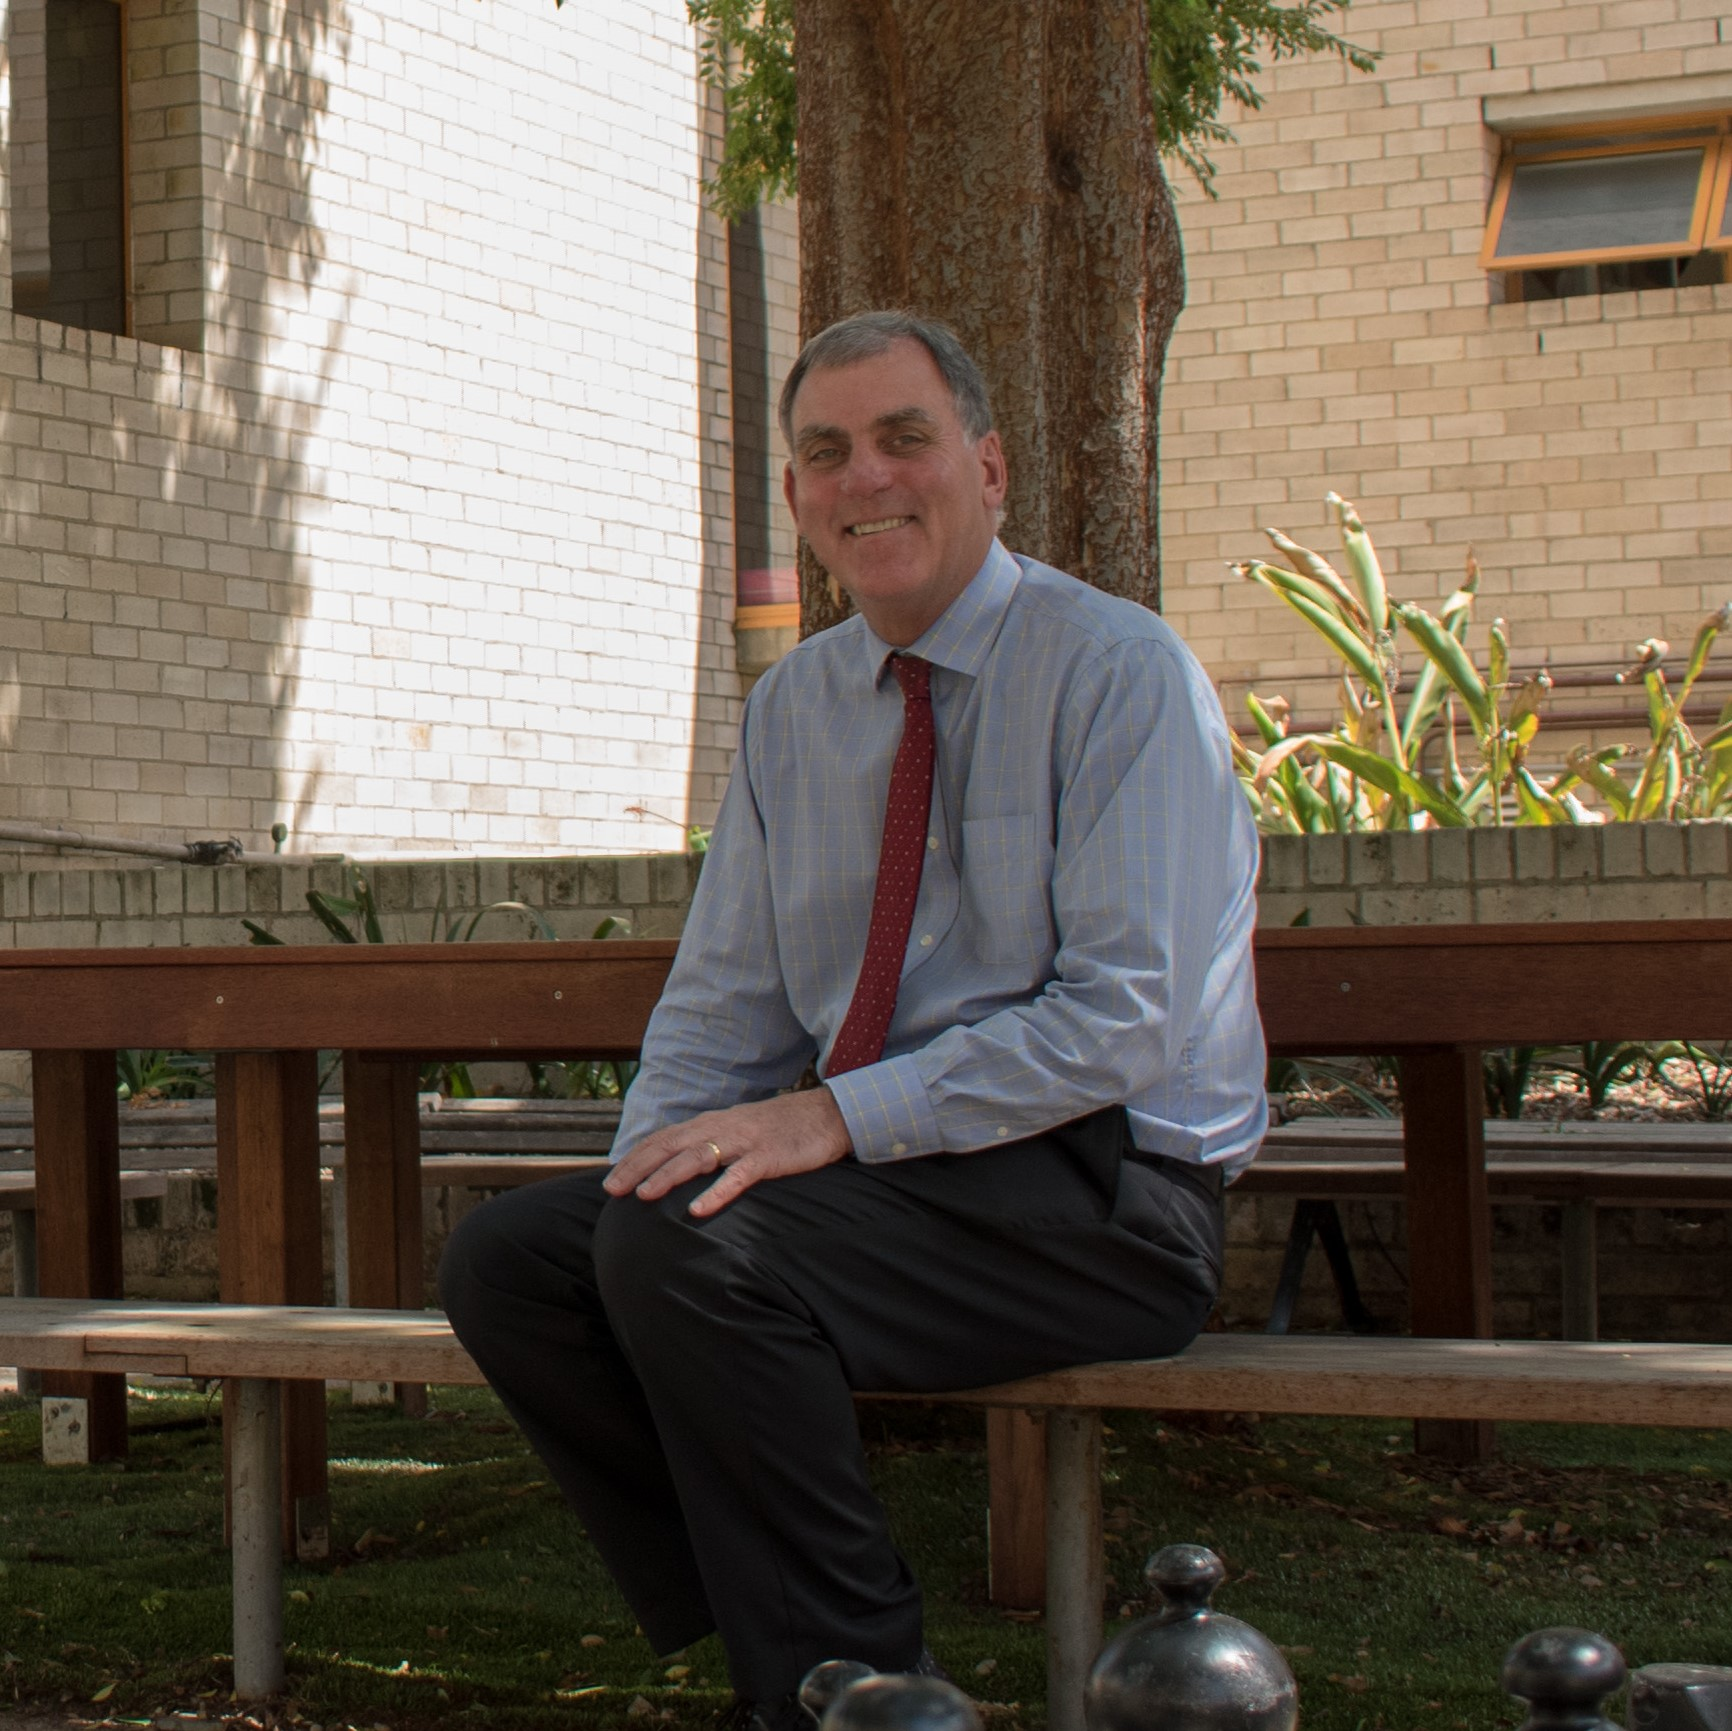 The Robert Menzies College Master